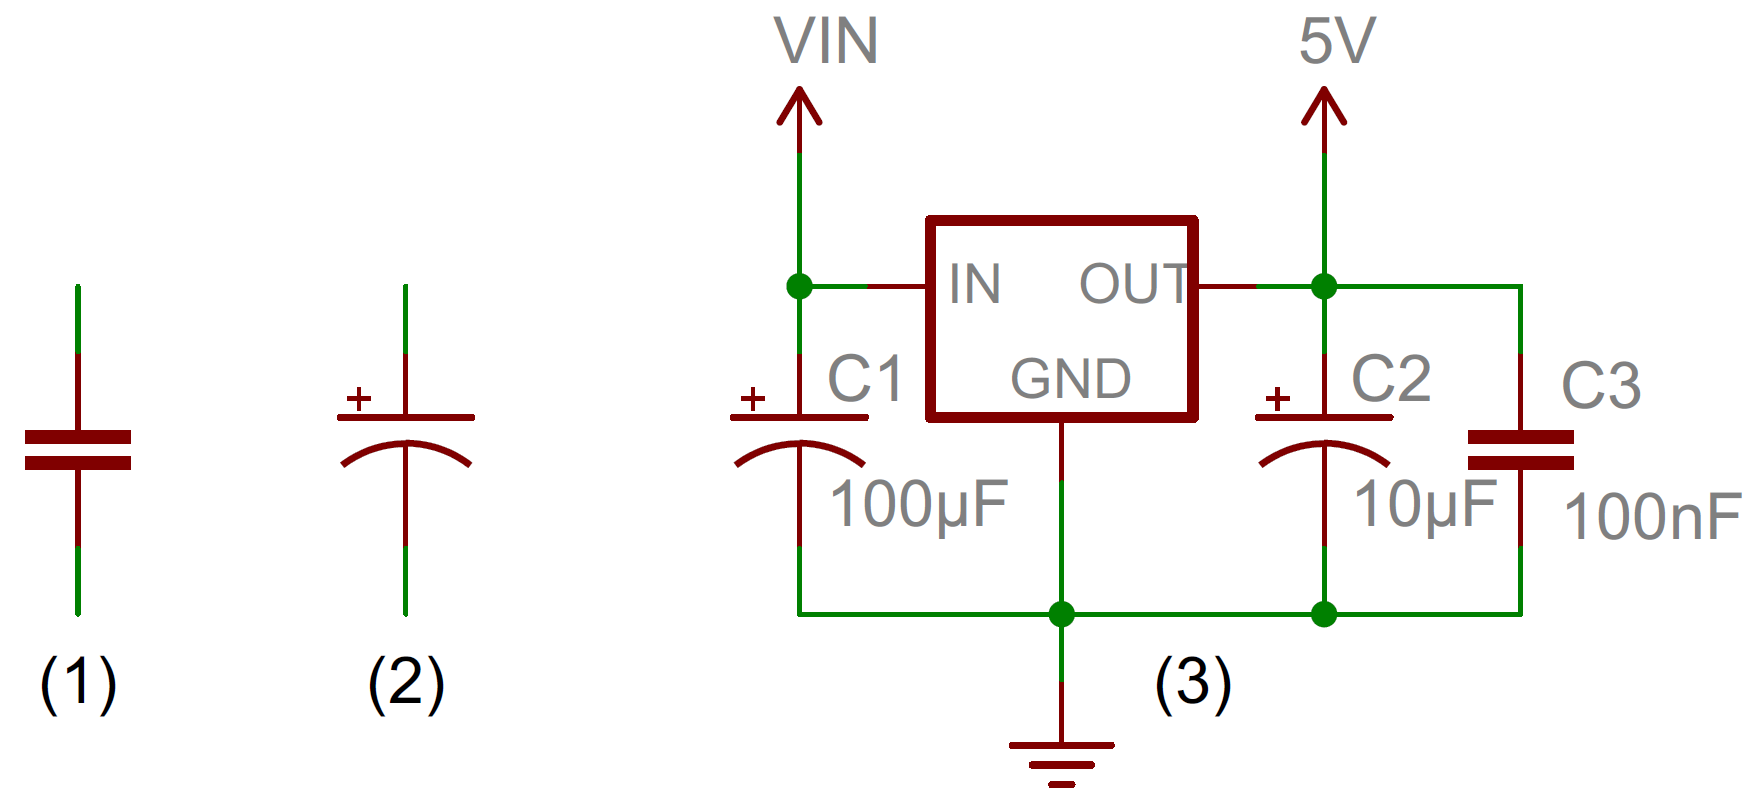 Capacitors It Take To Fully Charge With The Solar Panel Circuit Schematic 3 Capacitor Symbols